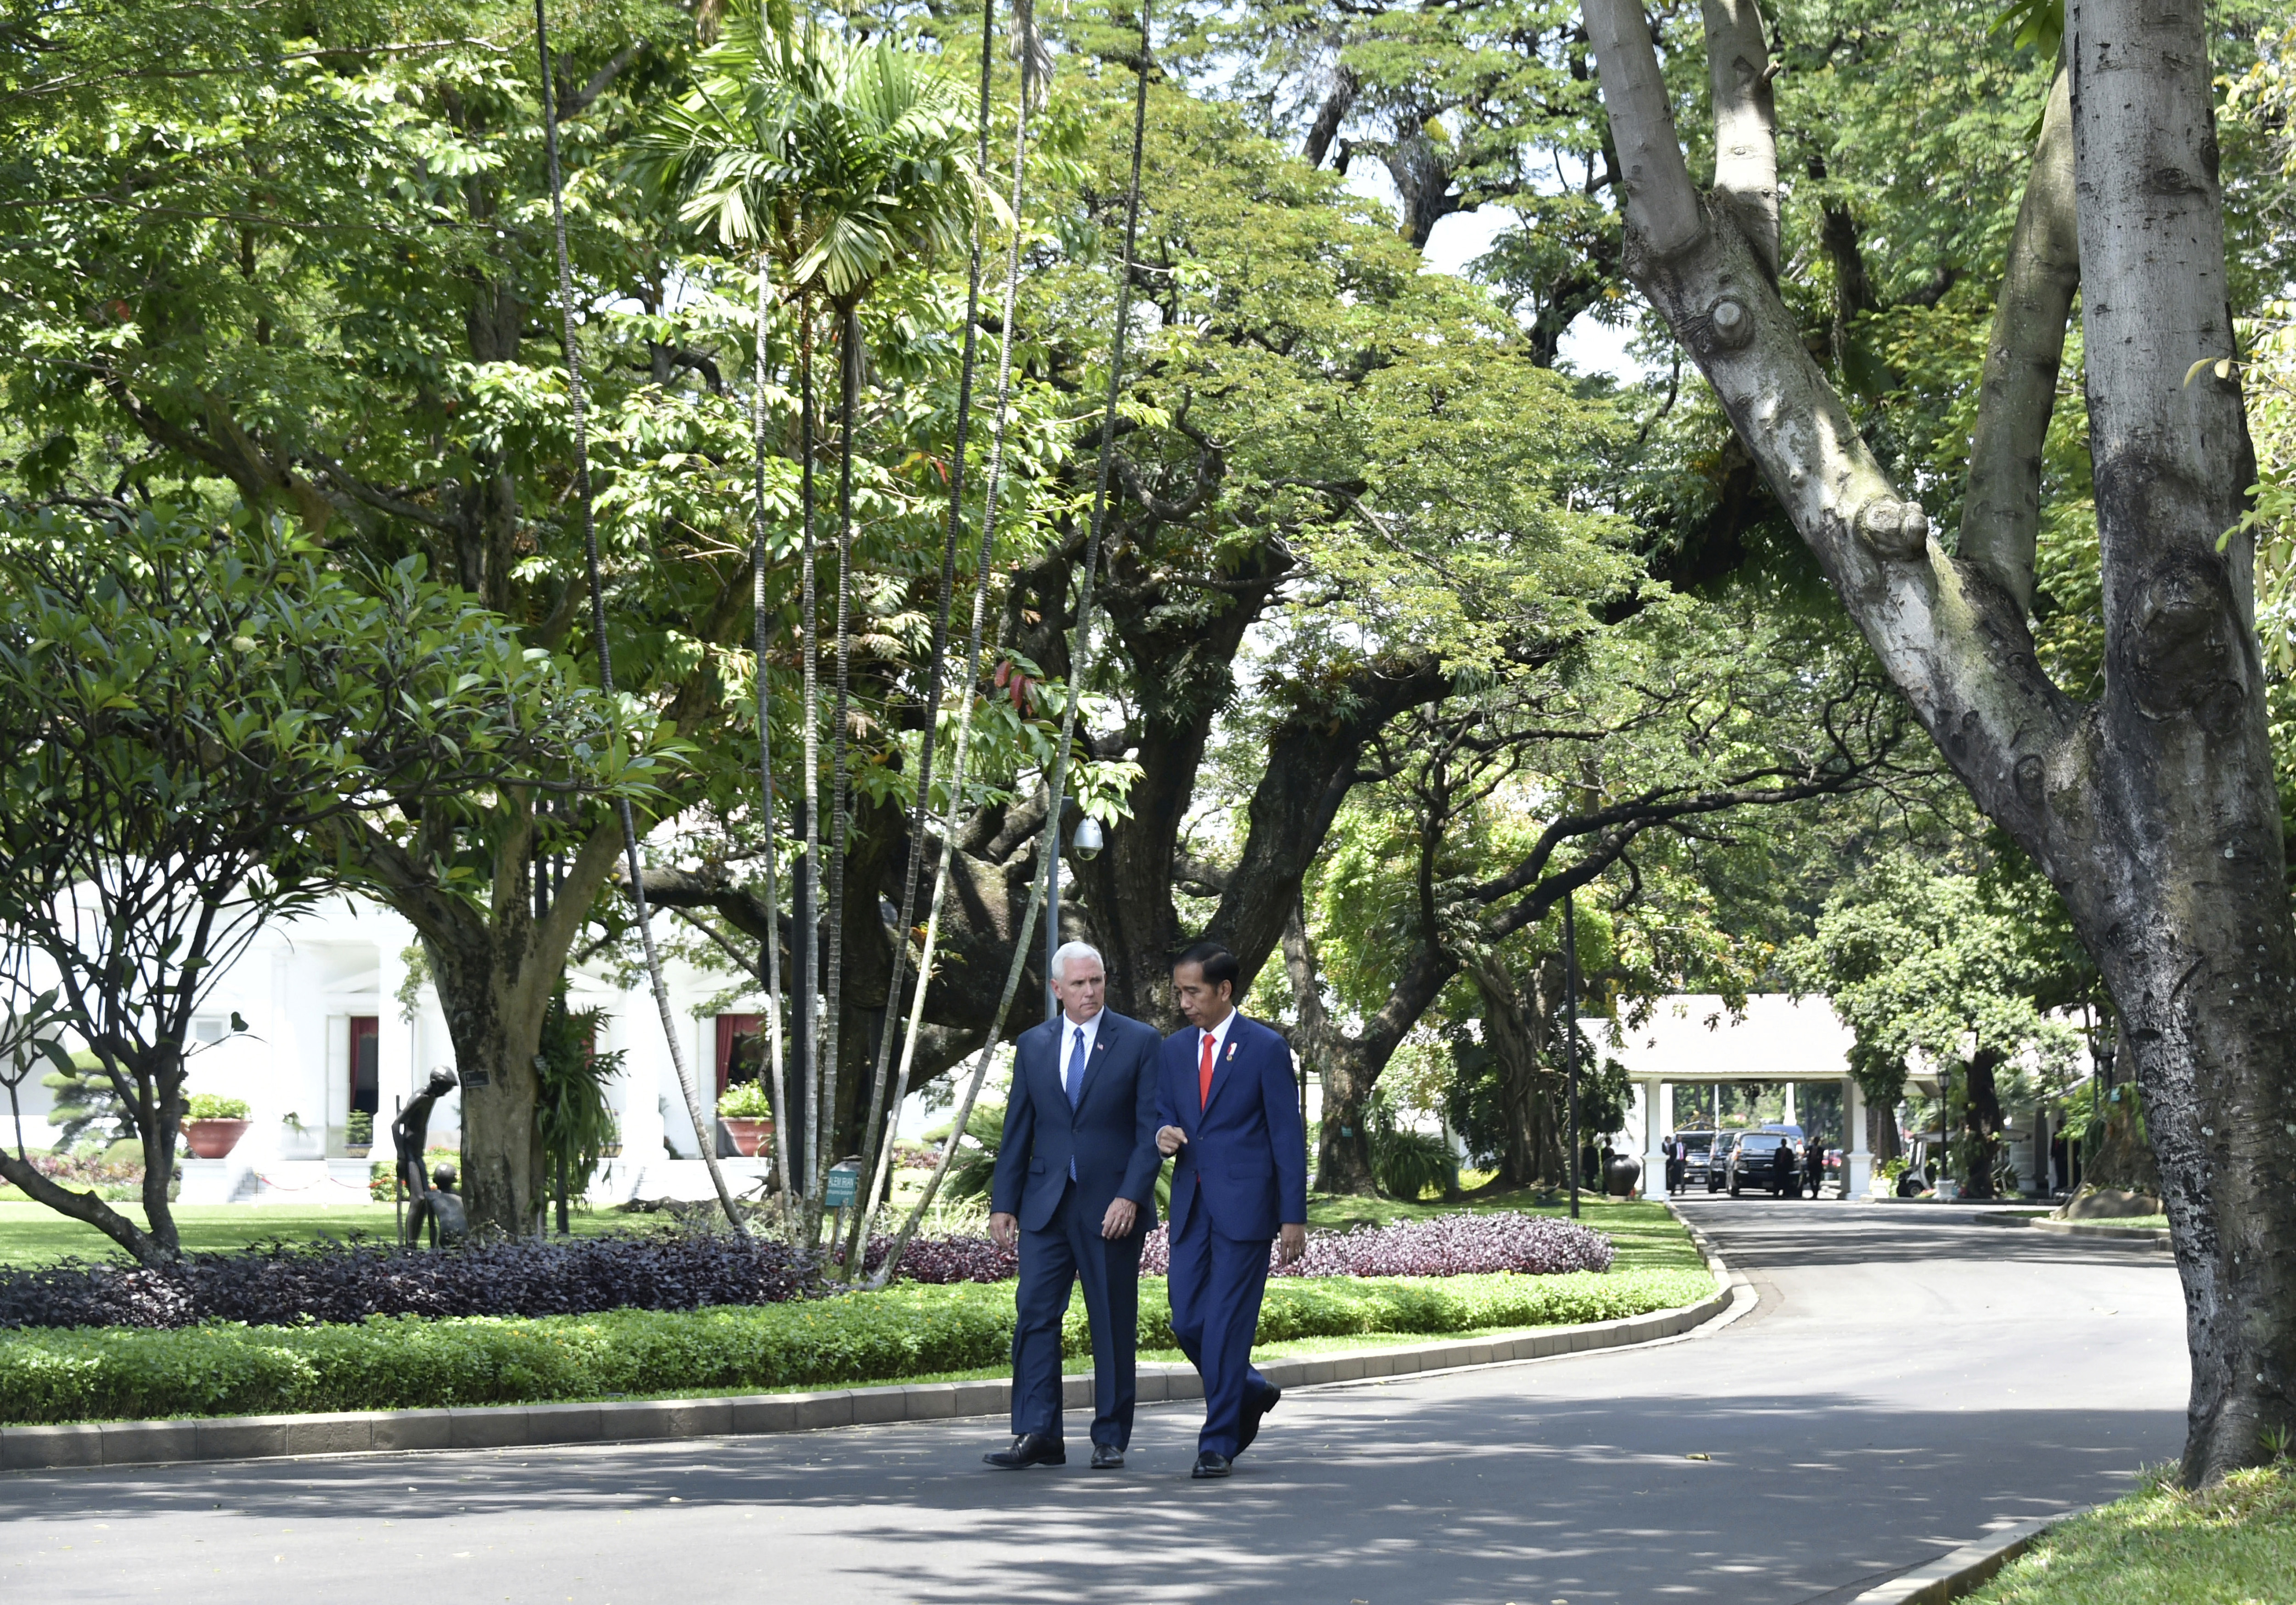 Indonesia Pence-1 U.S. Vice President Mike Pence, left, walks in the garden of Merdeka Palace with Indonesian President Joko Widodo during their meeting in Jakarta, Indonesia, Thursday, April 20, 2017. Indonesia is the latest stop on an Asian tour by Pence that is reinforcing traditional U.S. alliances at a time when Donald Trump's presidency has raised questions about the strength of the U.S. commitment to the region. (Bay Ismoyo/Pool Photo via AP)